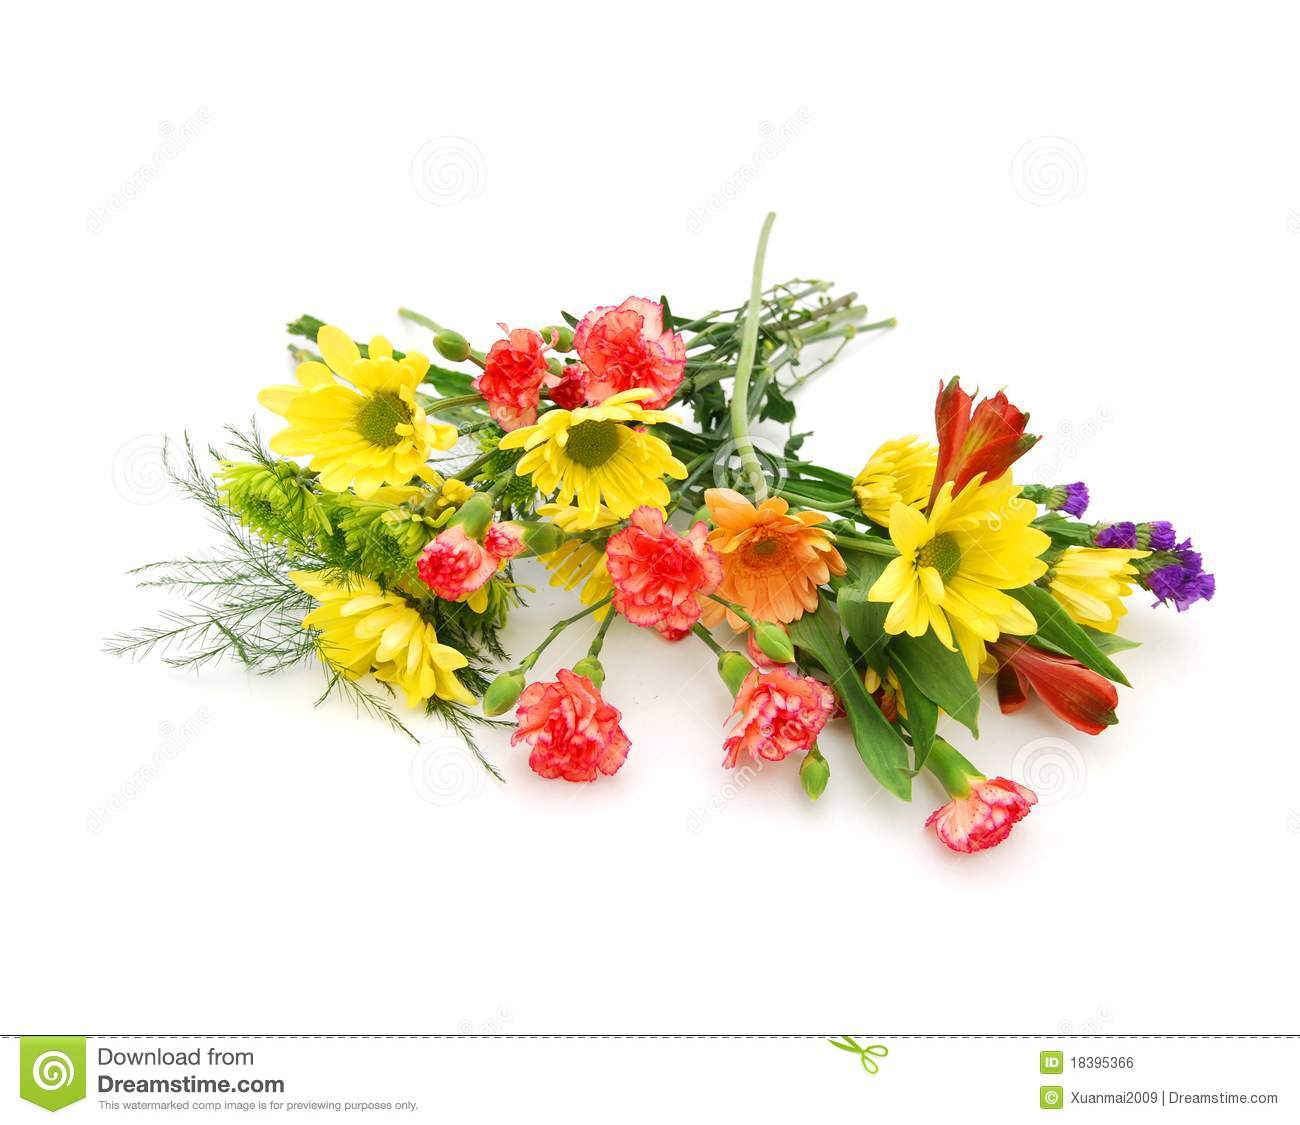 Beauty flower stock photo. Image of track, stalk, yellow - 18395366